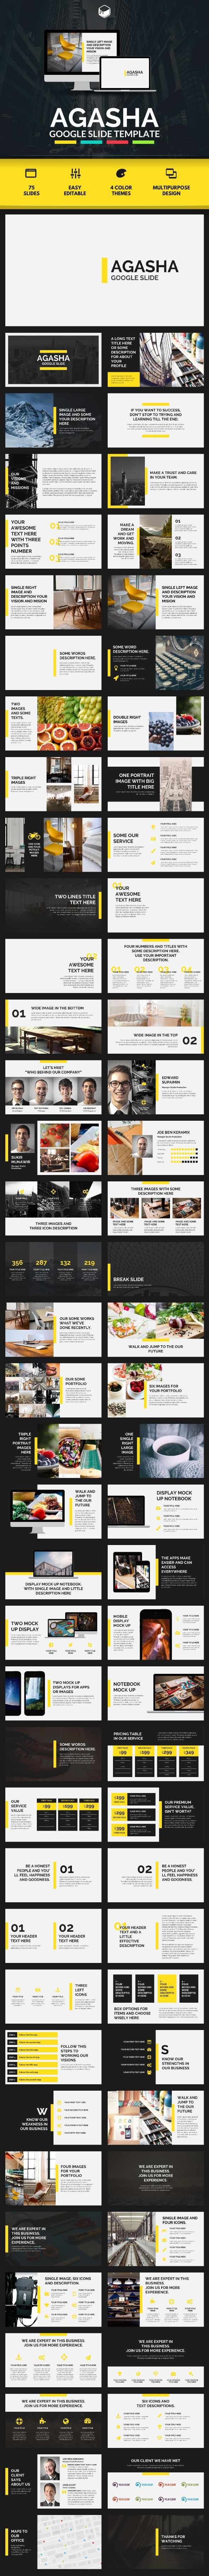 AGASHA - Google Slide Template - #Google #Slides #Presentation #Templates Download here: https://graphicriver.net/item/agasha-google-slide-template/16812960?ref=alena994